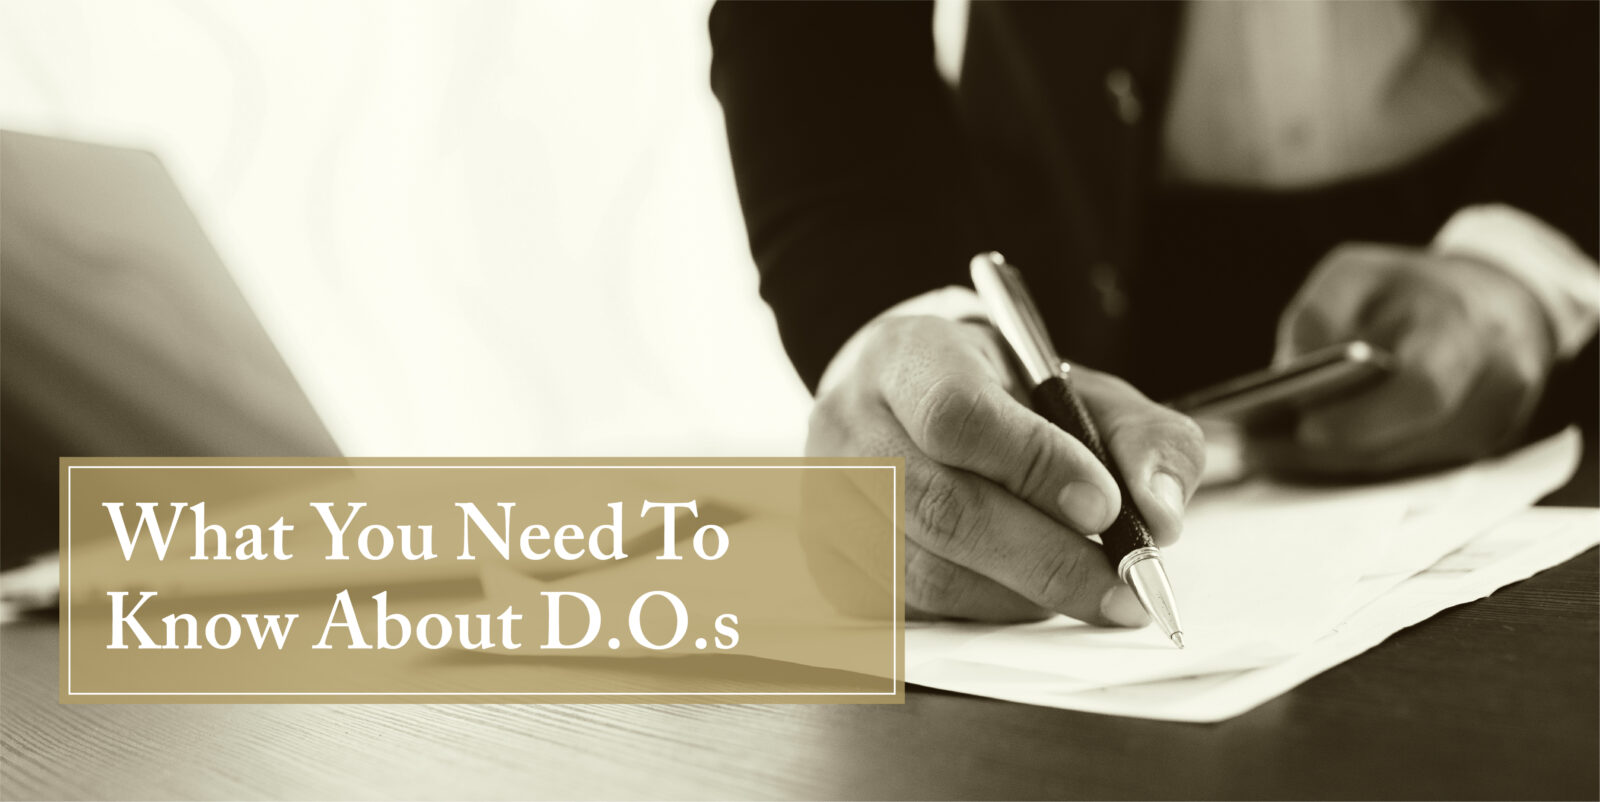 What is a D.O. and do I need one?